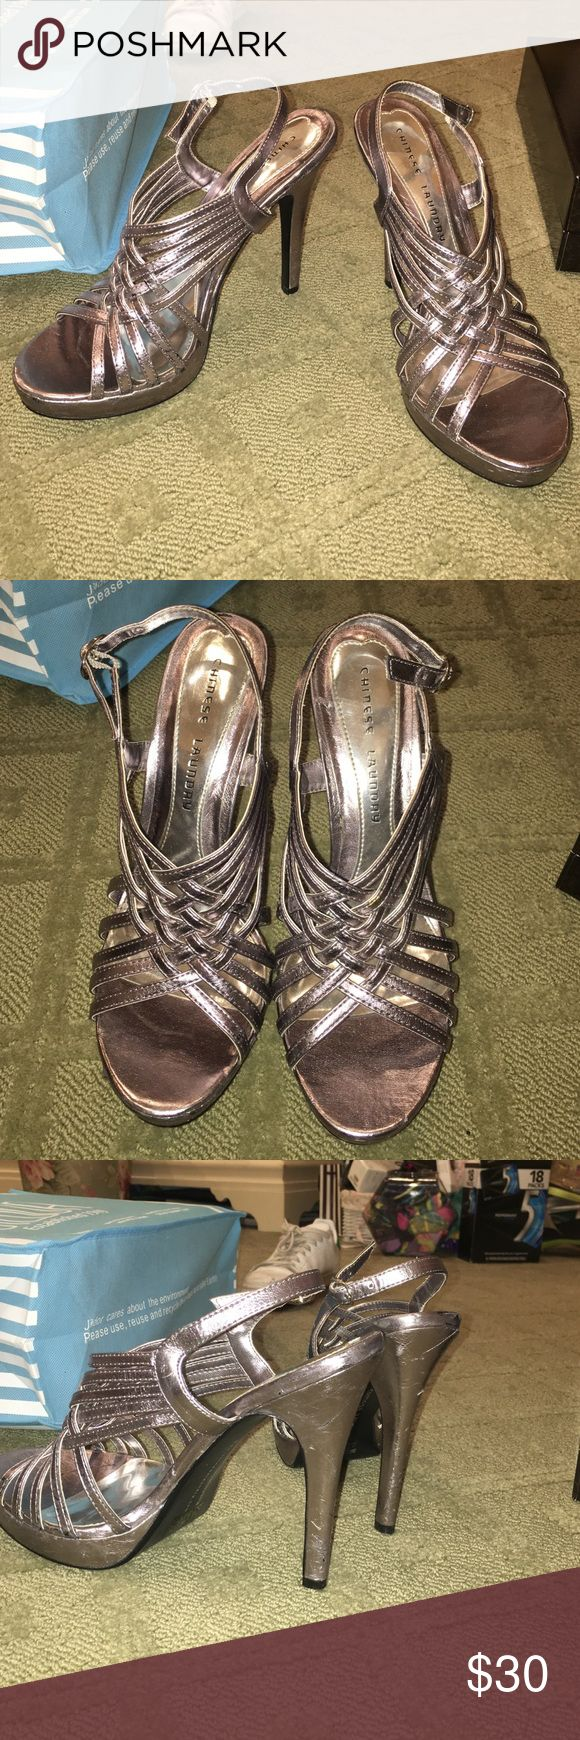 Gun metal strappy pumps Chinese laundry strappy heels with small platform. The color is like a dark silver / gun metal. Super cool color. The back is adjustable. In decent condition, but a little scuffed up. Size 9, but run a little small. Closer to a size 8. Chinese Laundry Shoes Heels